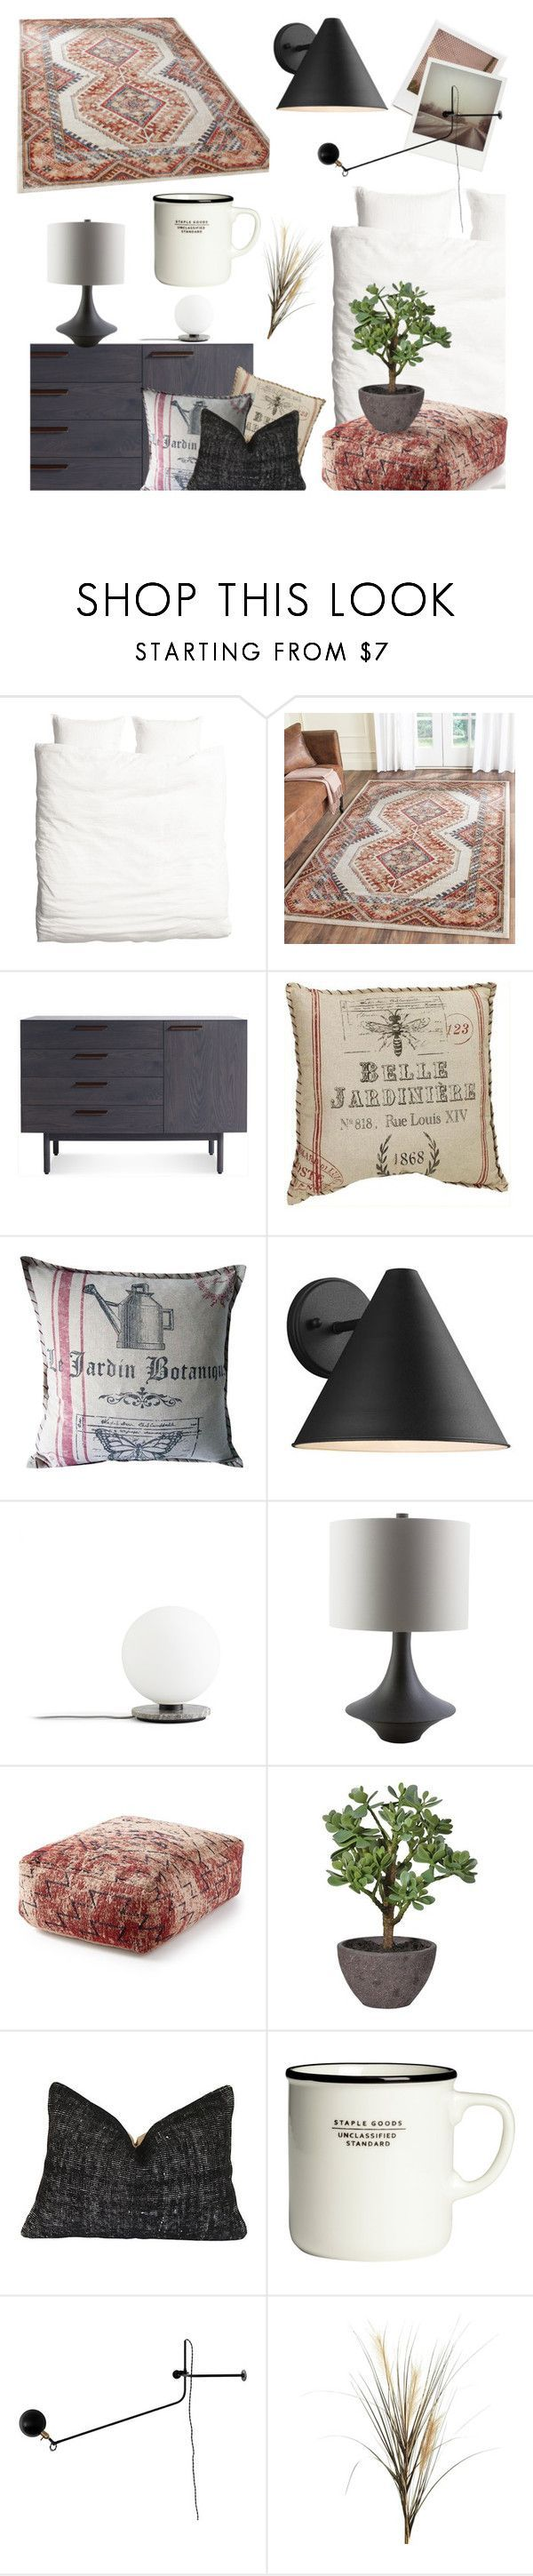 """""""Modern French Country Bedroom"""" by jill-bh ❤ liked on Polyvore featuring interior, interiors, interior design, home, home decor, interior decorating, H&M, Blu Dot, Sea Gull Lighting and Menu"""